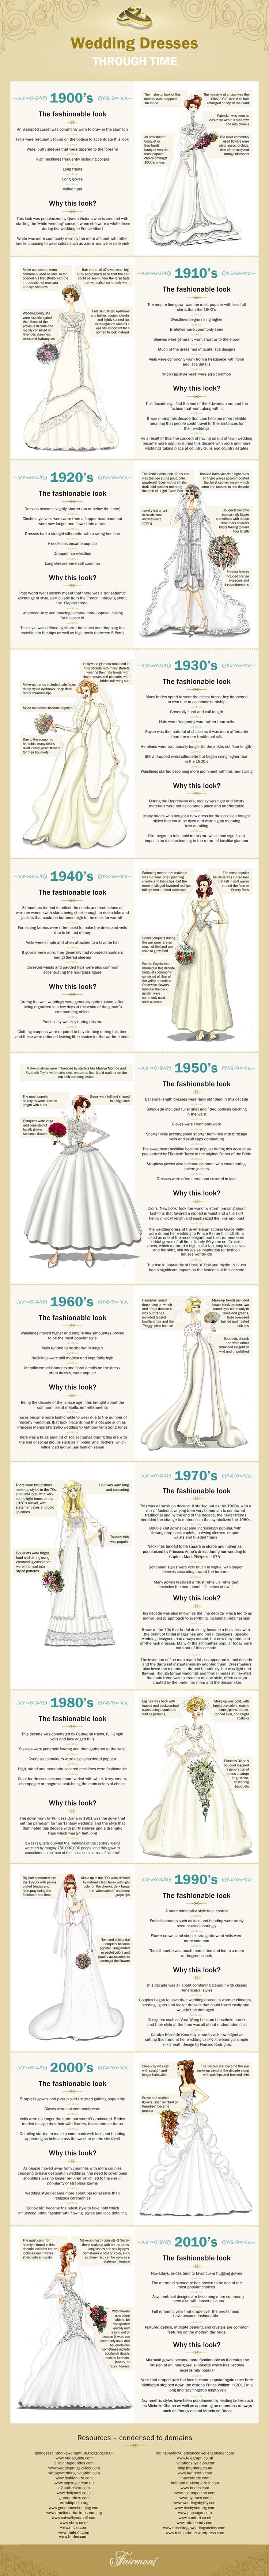 How wedding gown trends have changed over the last century